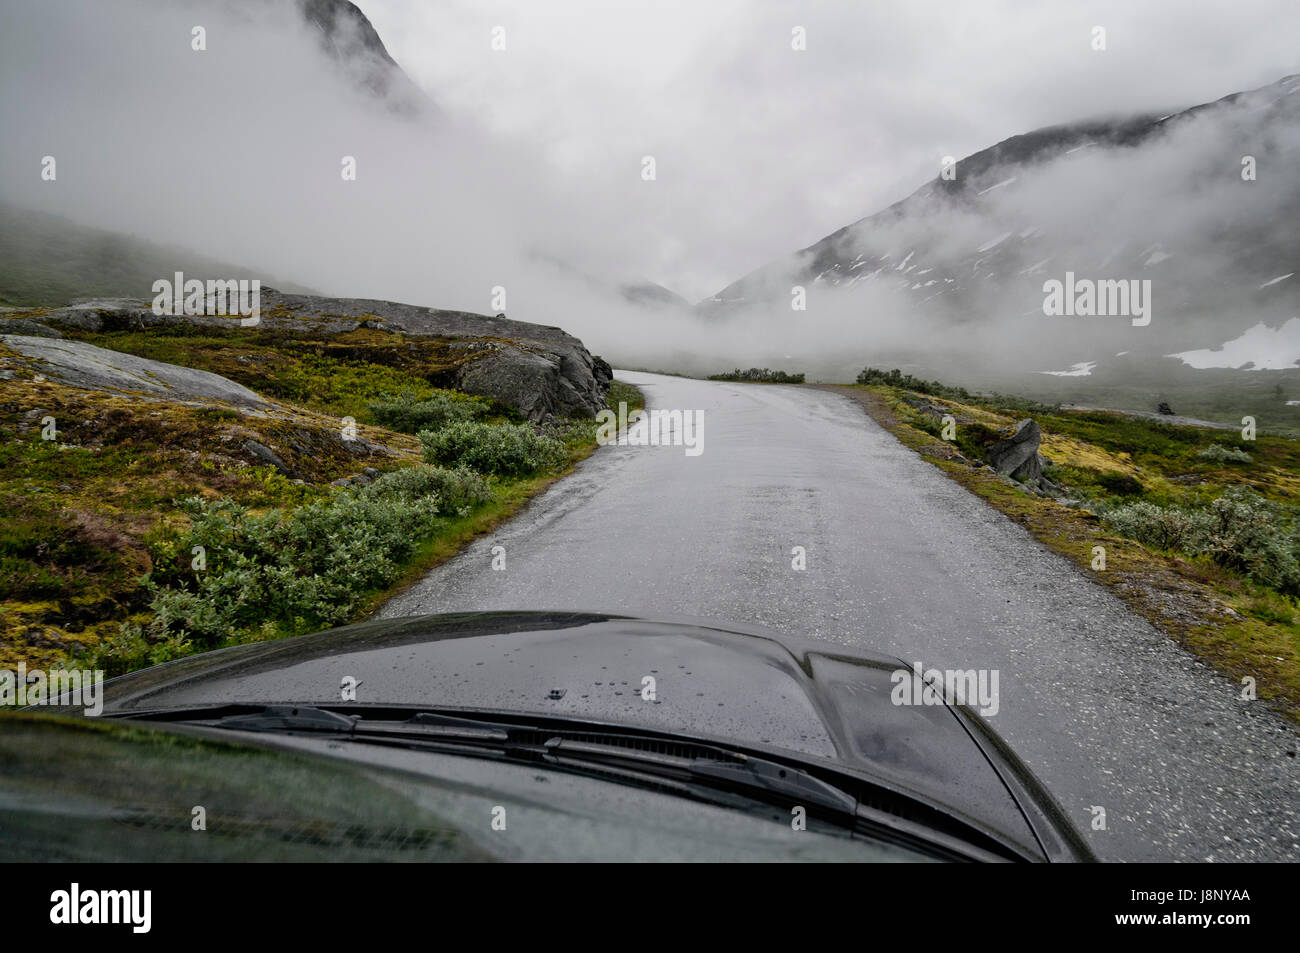 Country road on foggy day Stock Photo